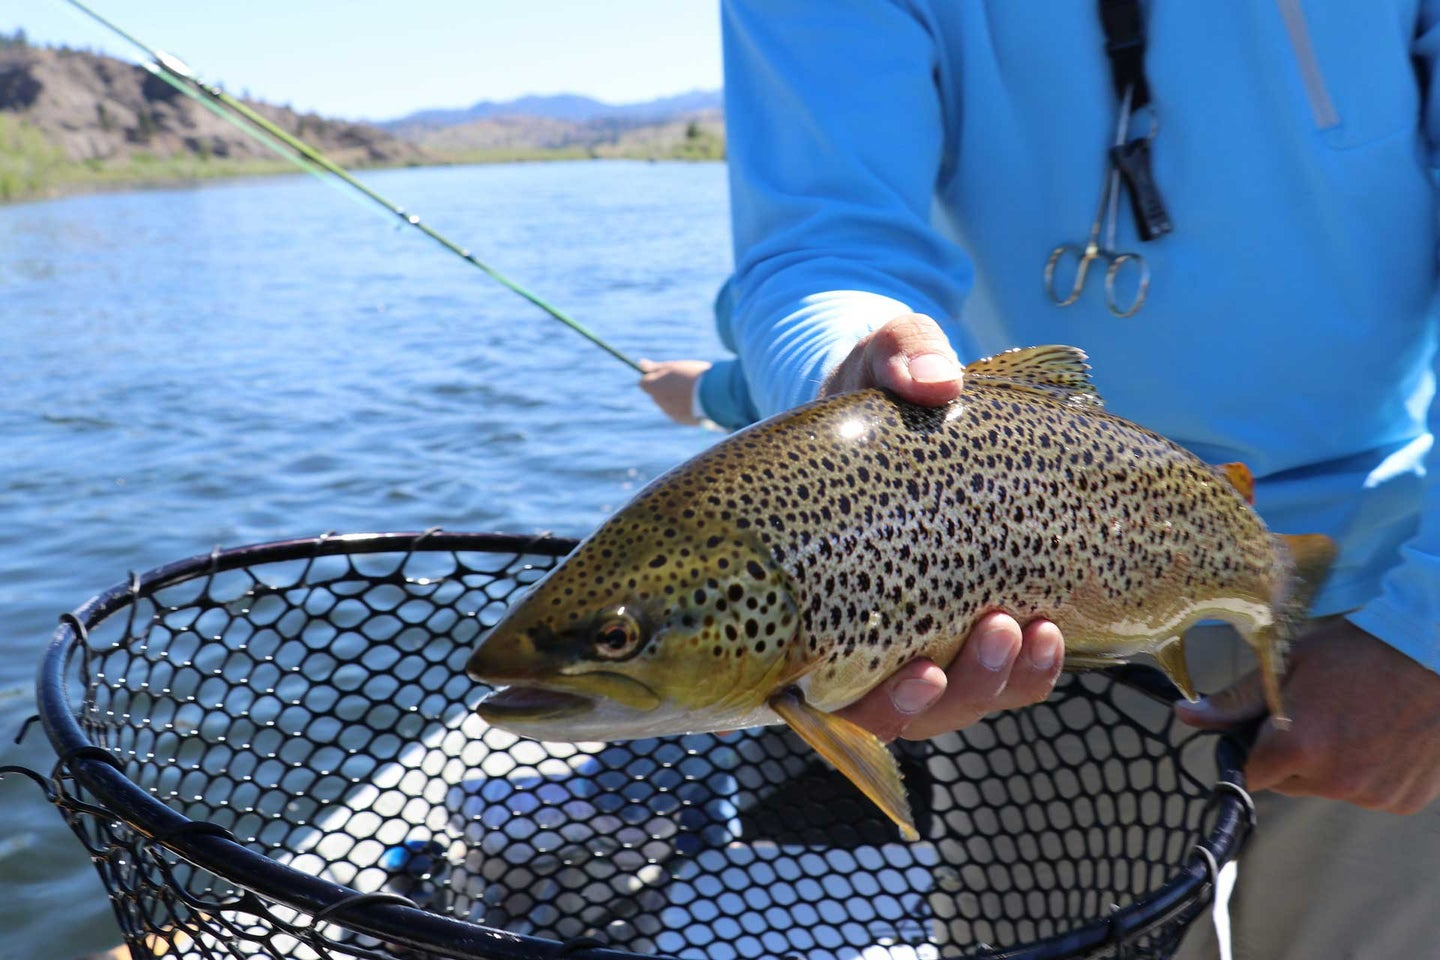 A brown trout being pulled out of a fishing net.